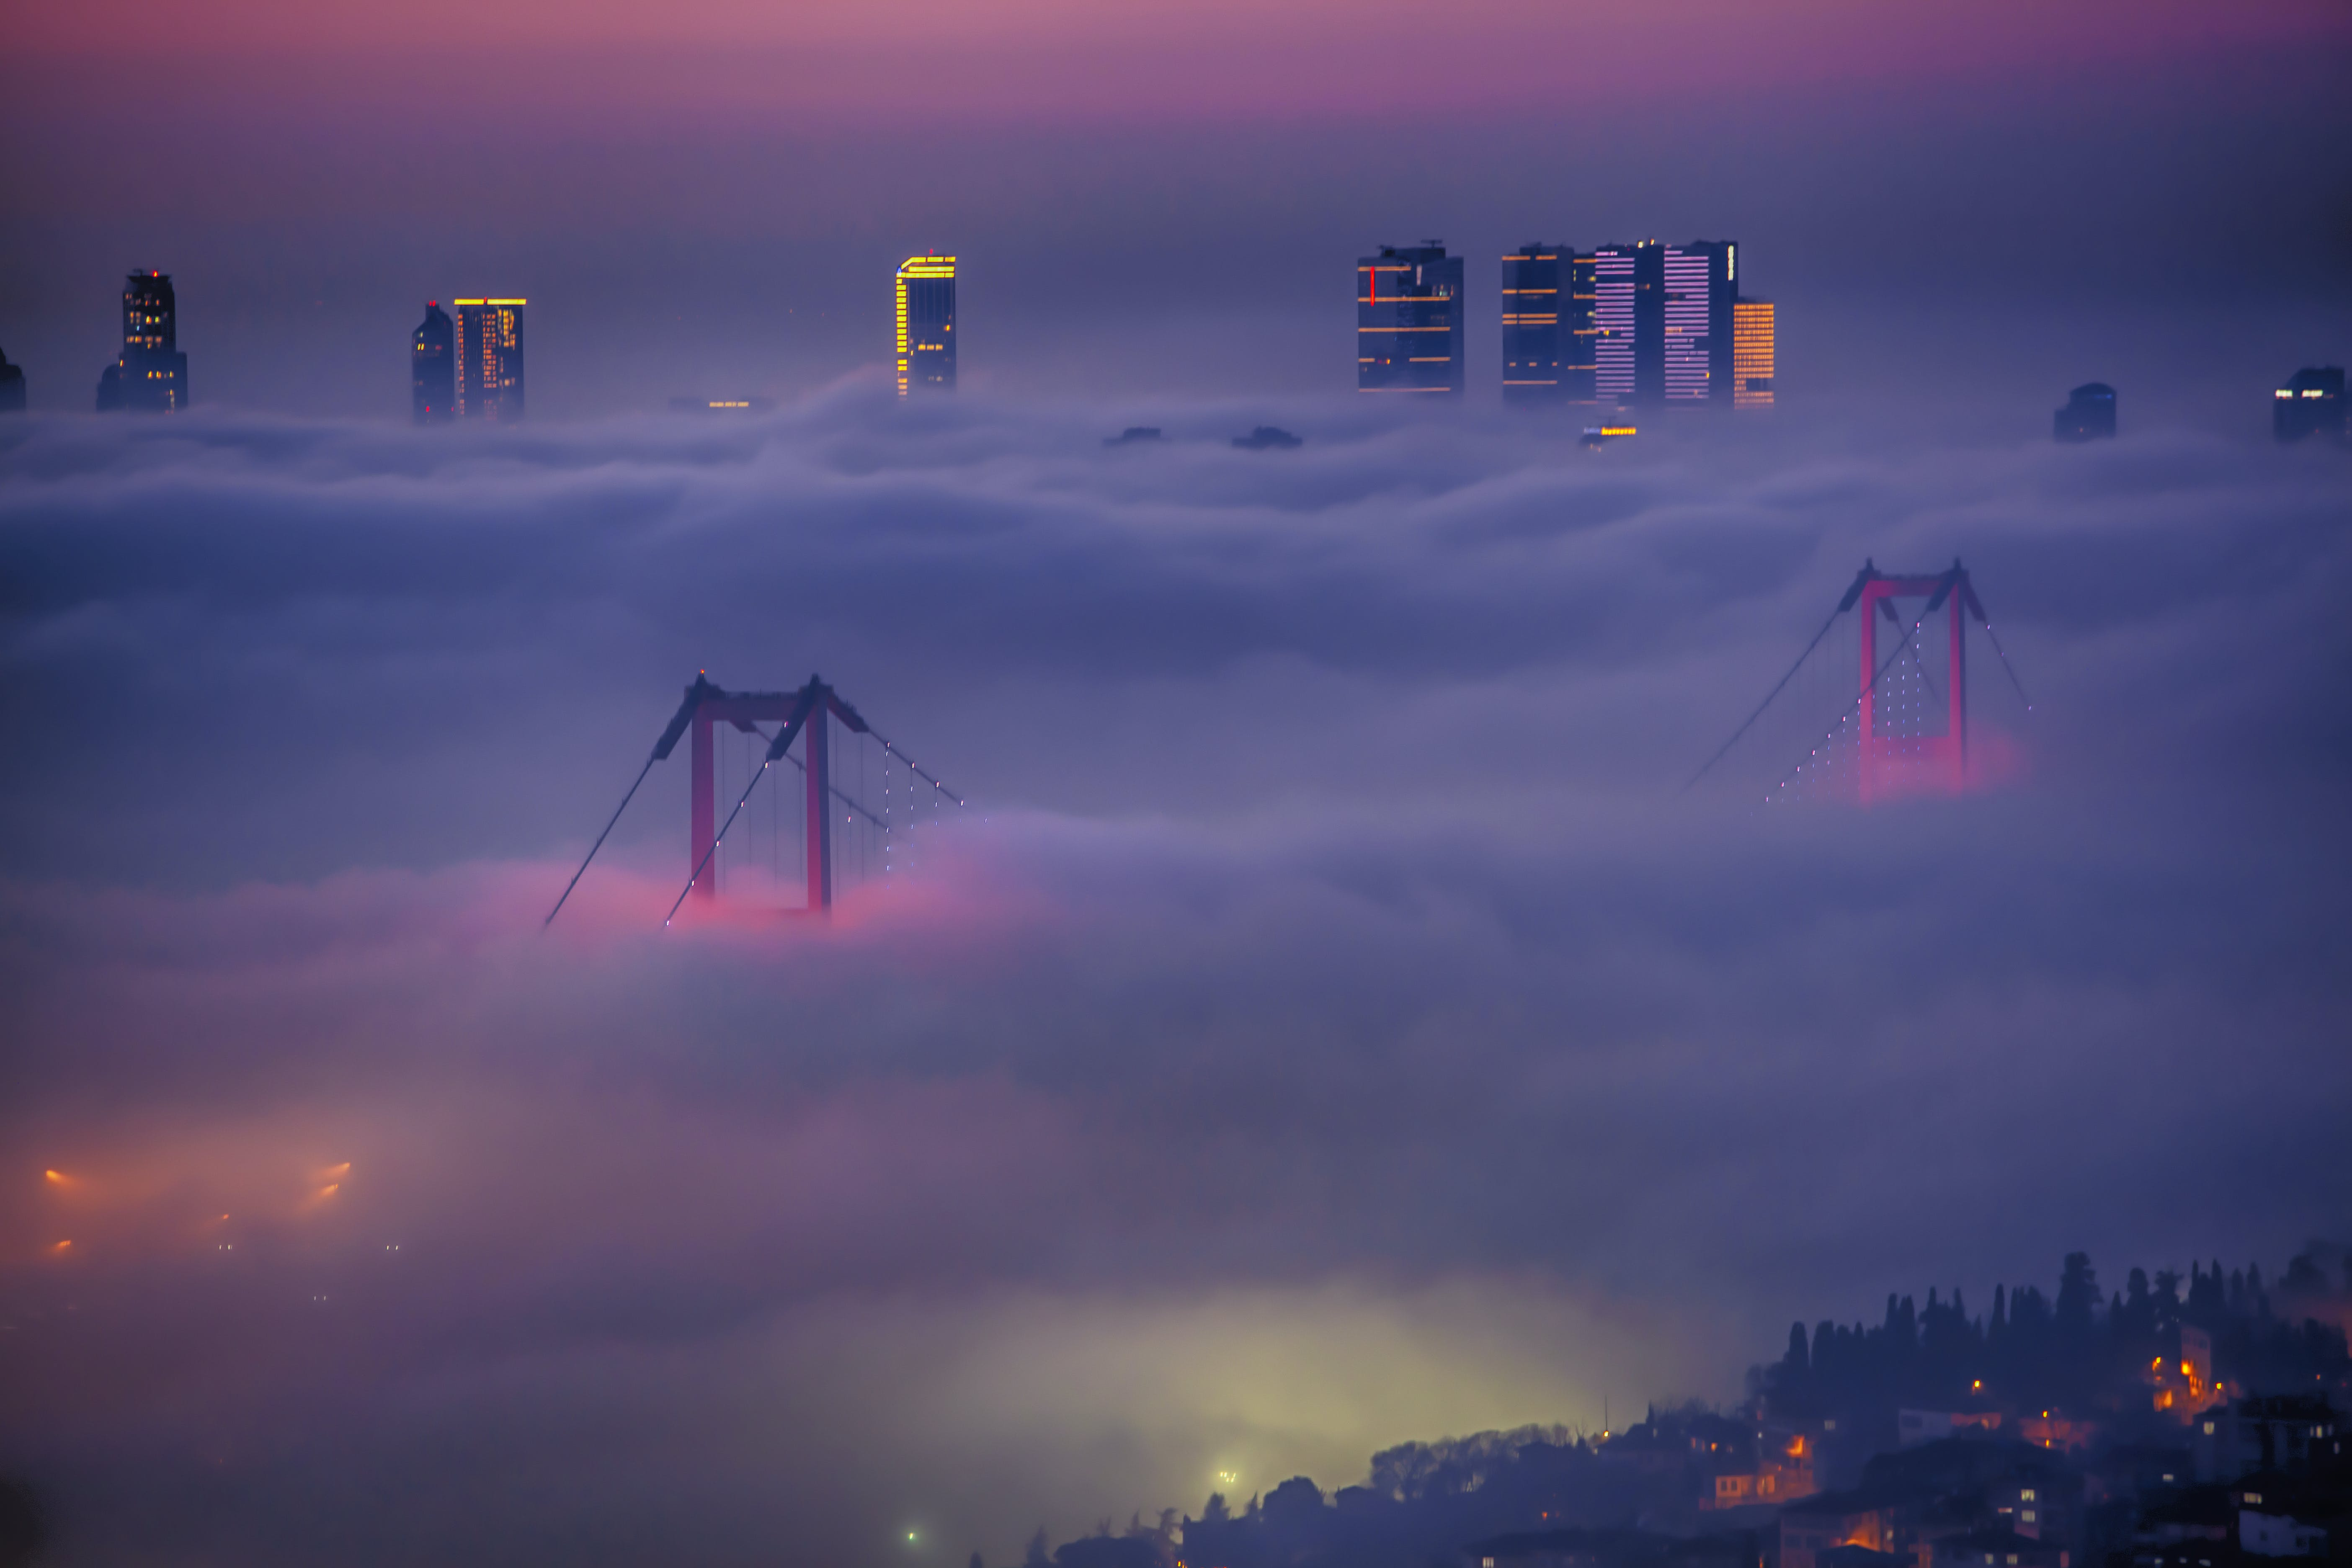 Free stock photo of fog, foggy, Foggy landscape, Istanbul